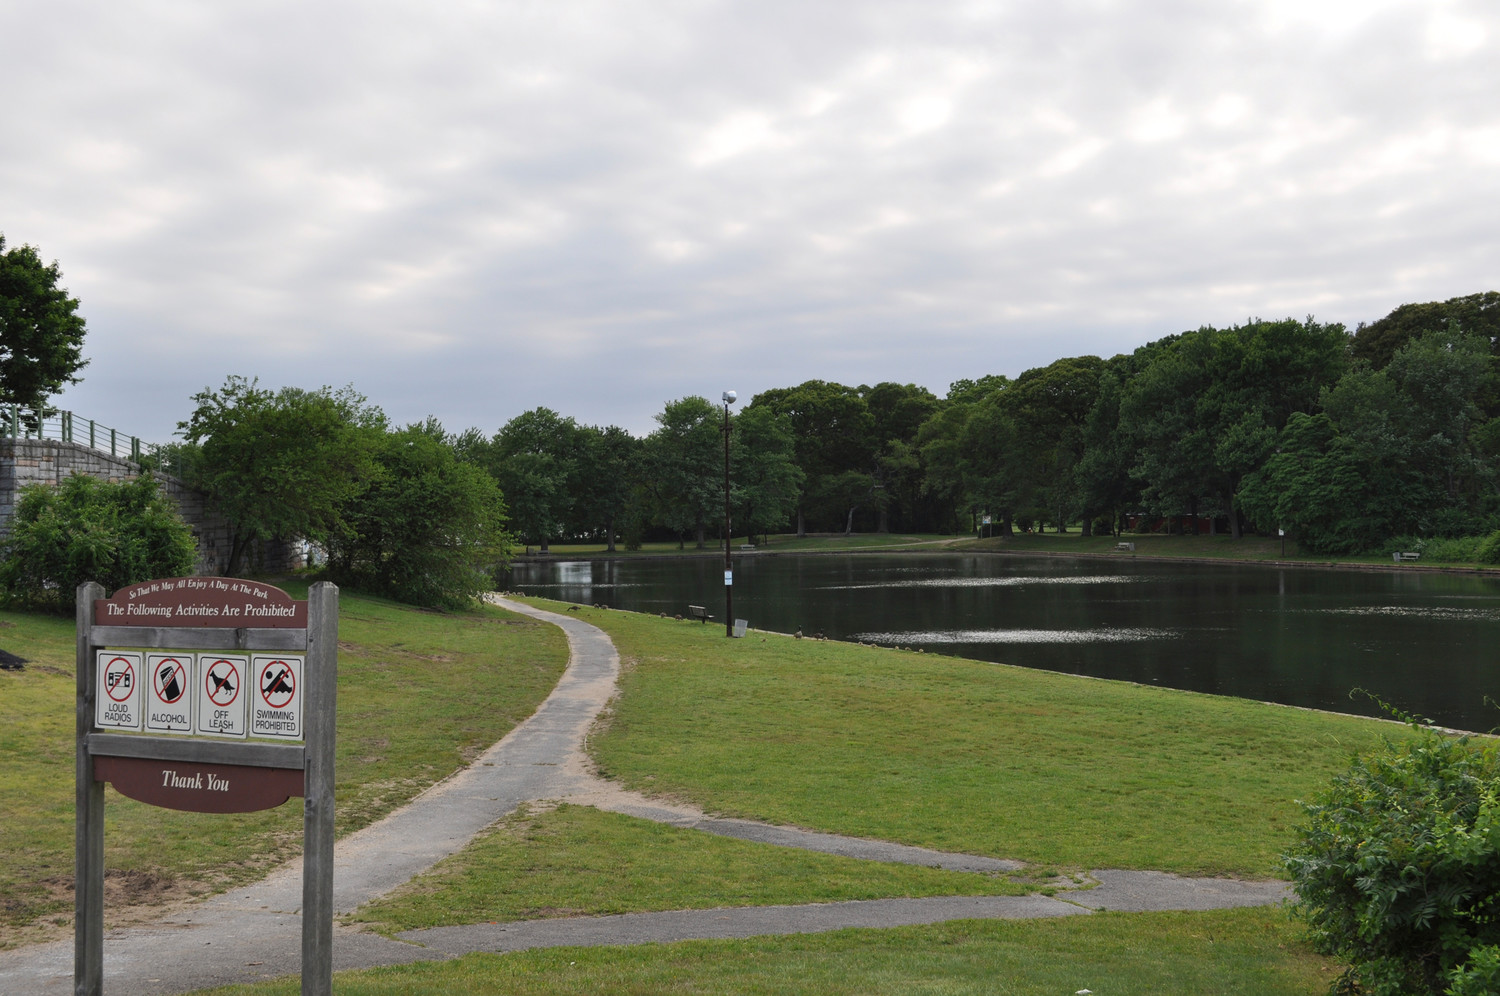 The proposed $125 million in updates for Hempstead Lake State Park include renovated trails, repaired dams, an educational center, and 48 new parking spots, among other things.